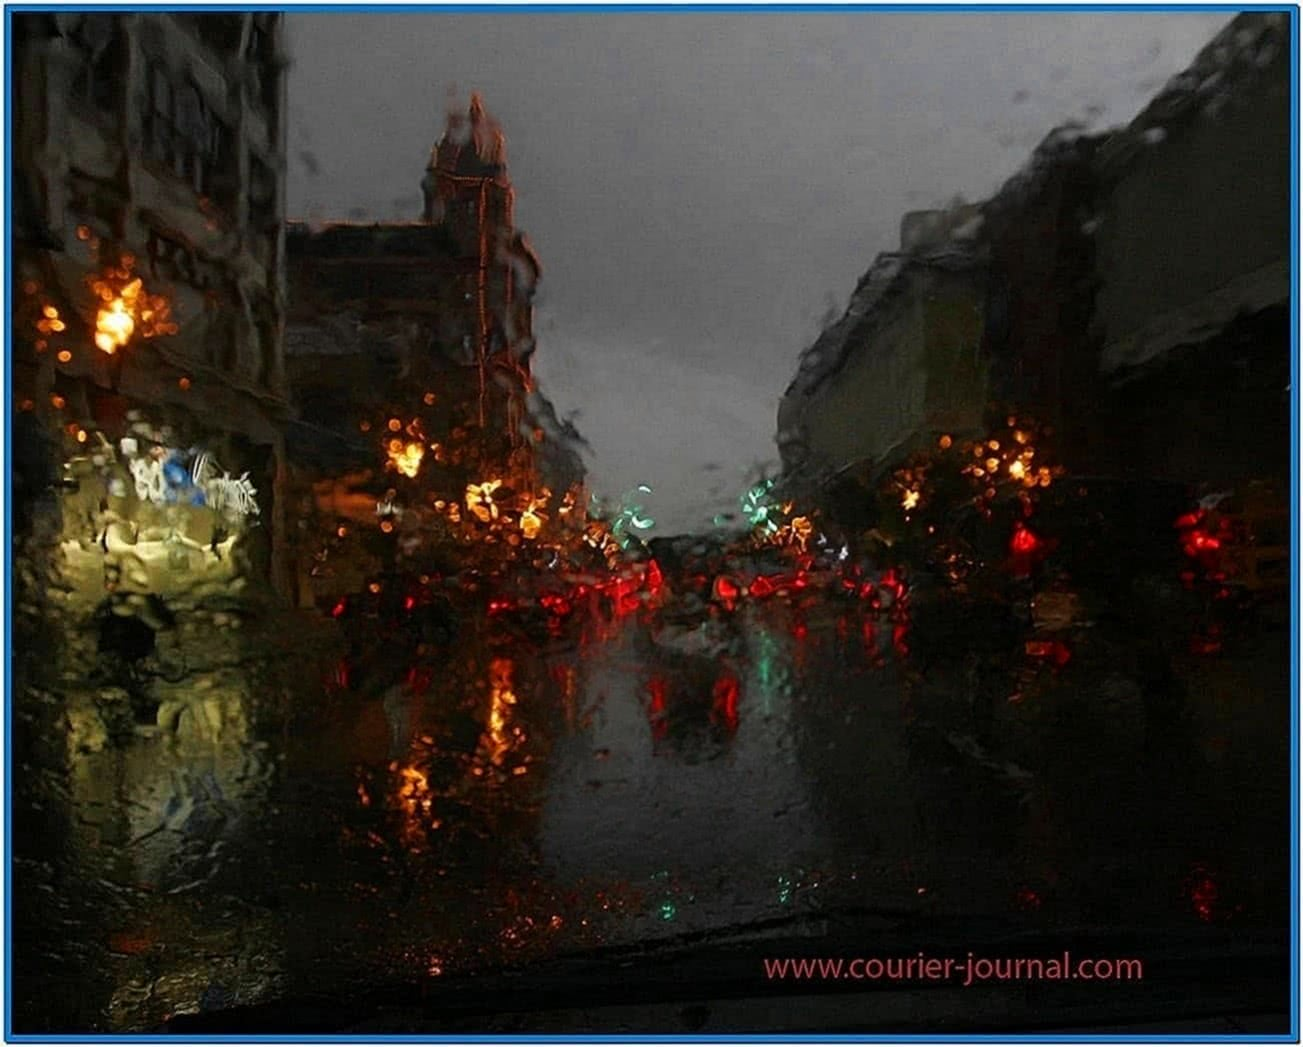 Rainy Day Screensaver Download Free